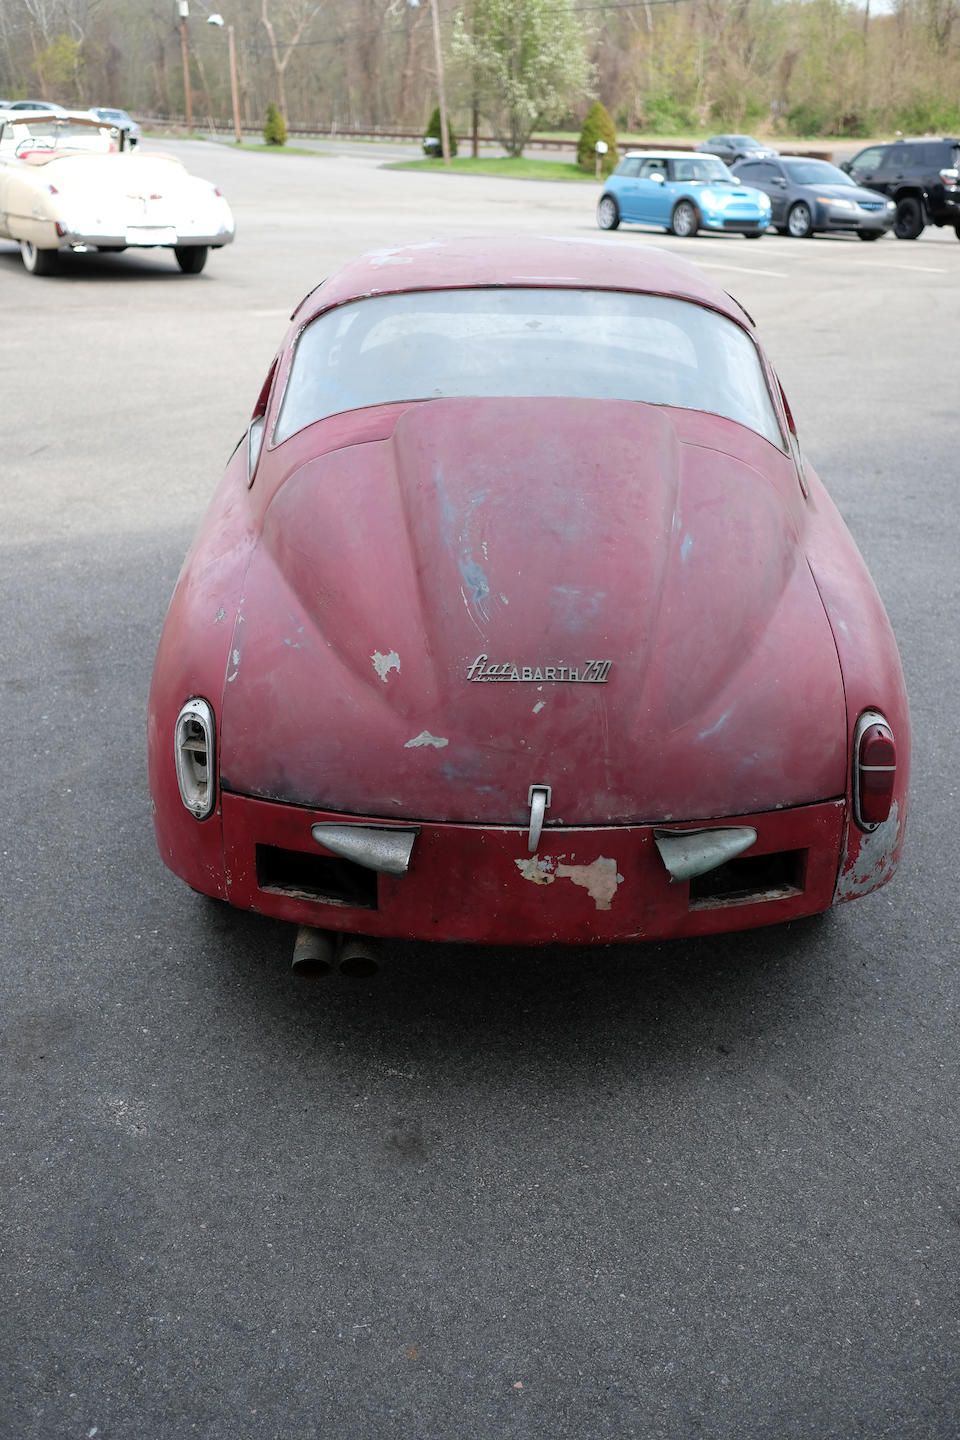 <b>c.1959 Fiat-Abarth 750 Record Monza</b><br />Chassis no. 676193<br />Engine no. 751536